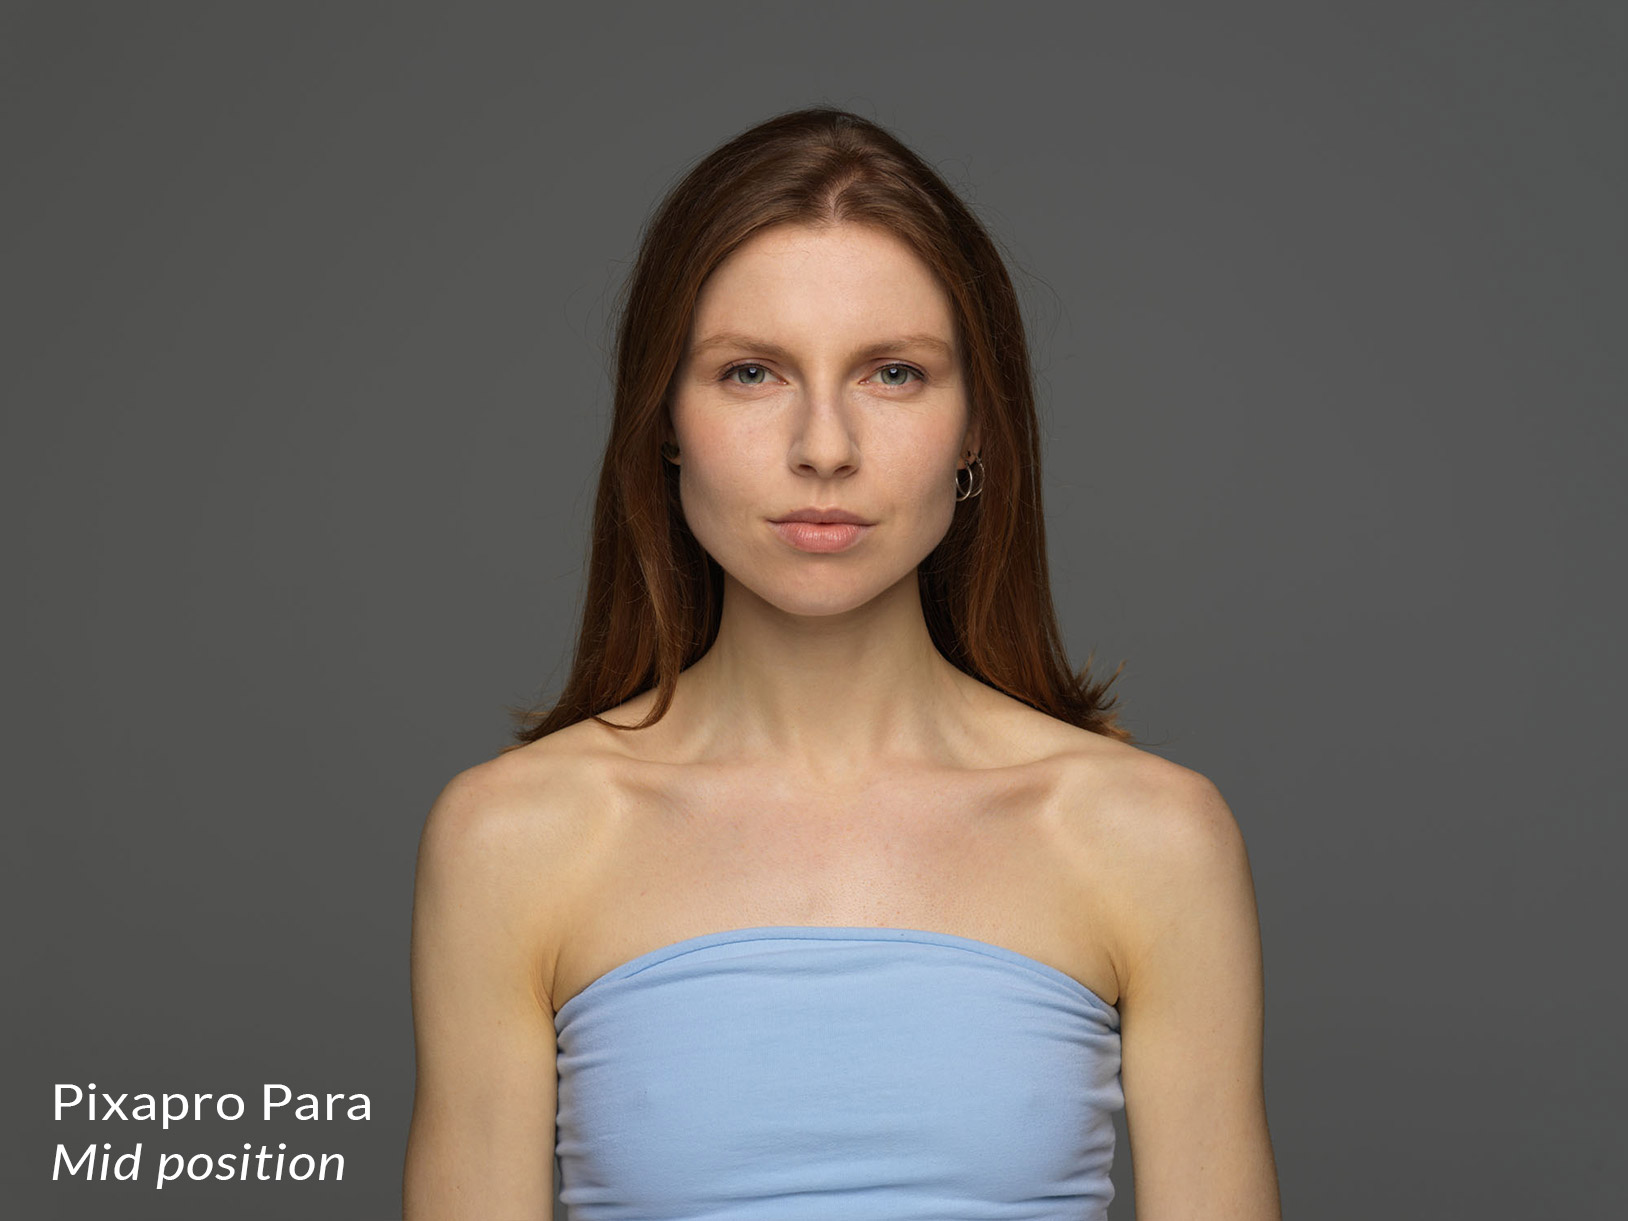 Lighting from a Pixapro parabolic reflector in the mid position